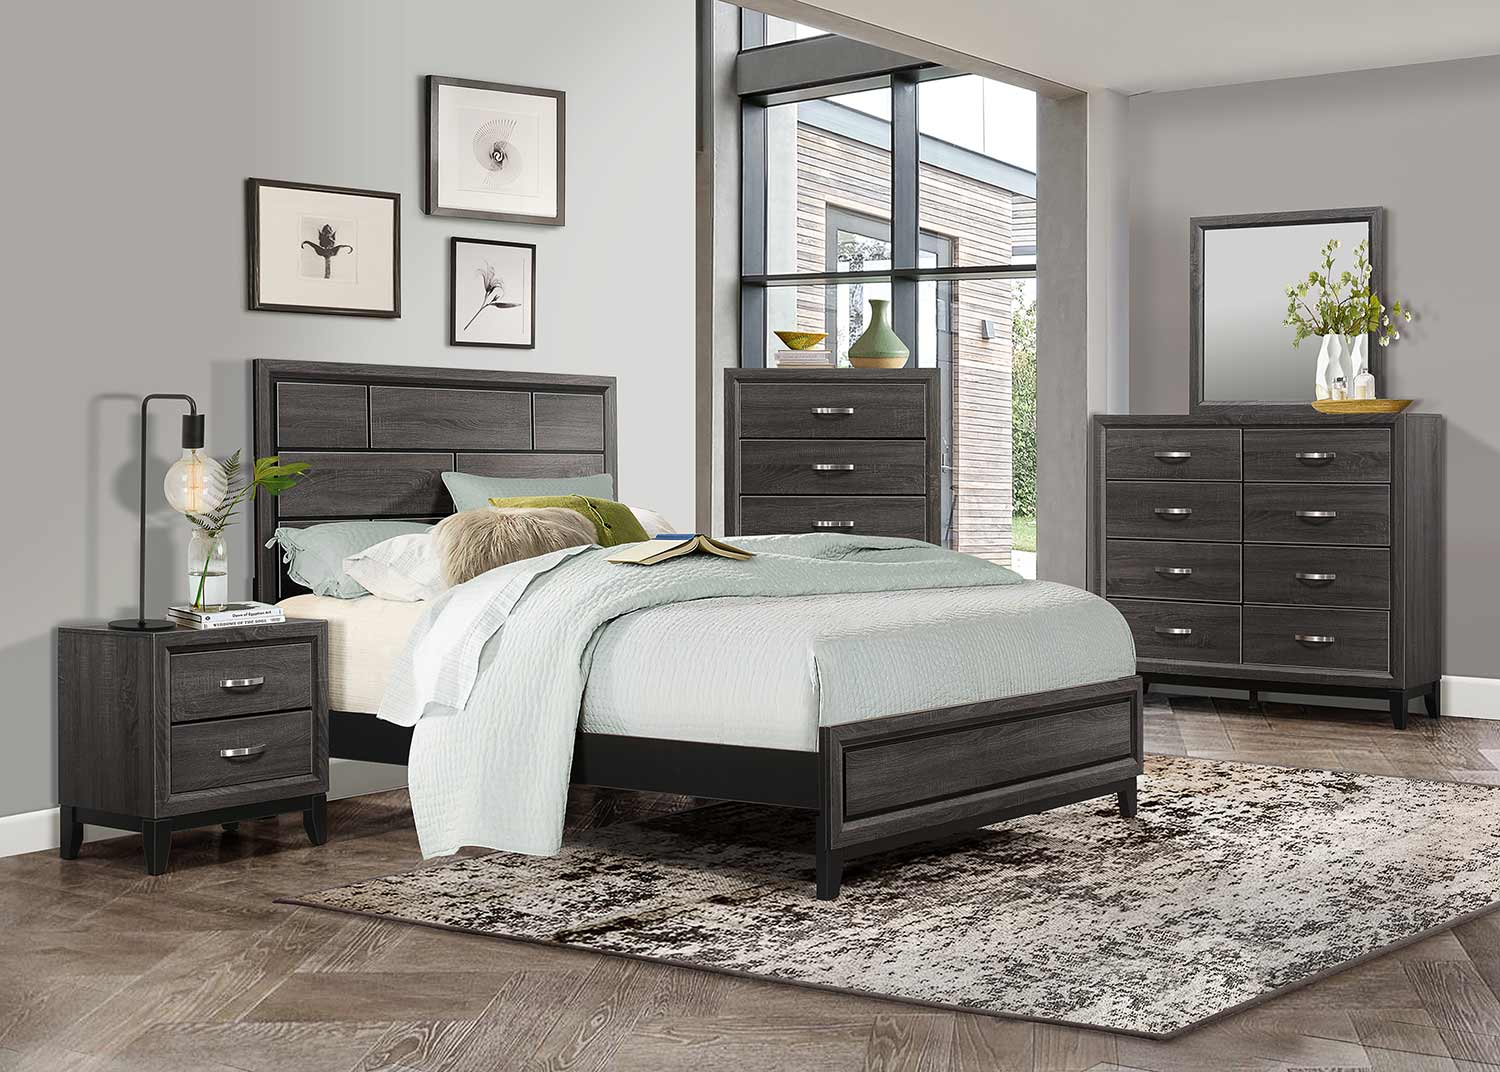 Homelegance Davi Bedroom Set - Gray